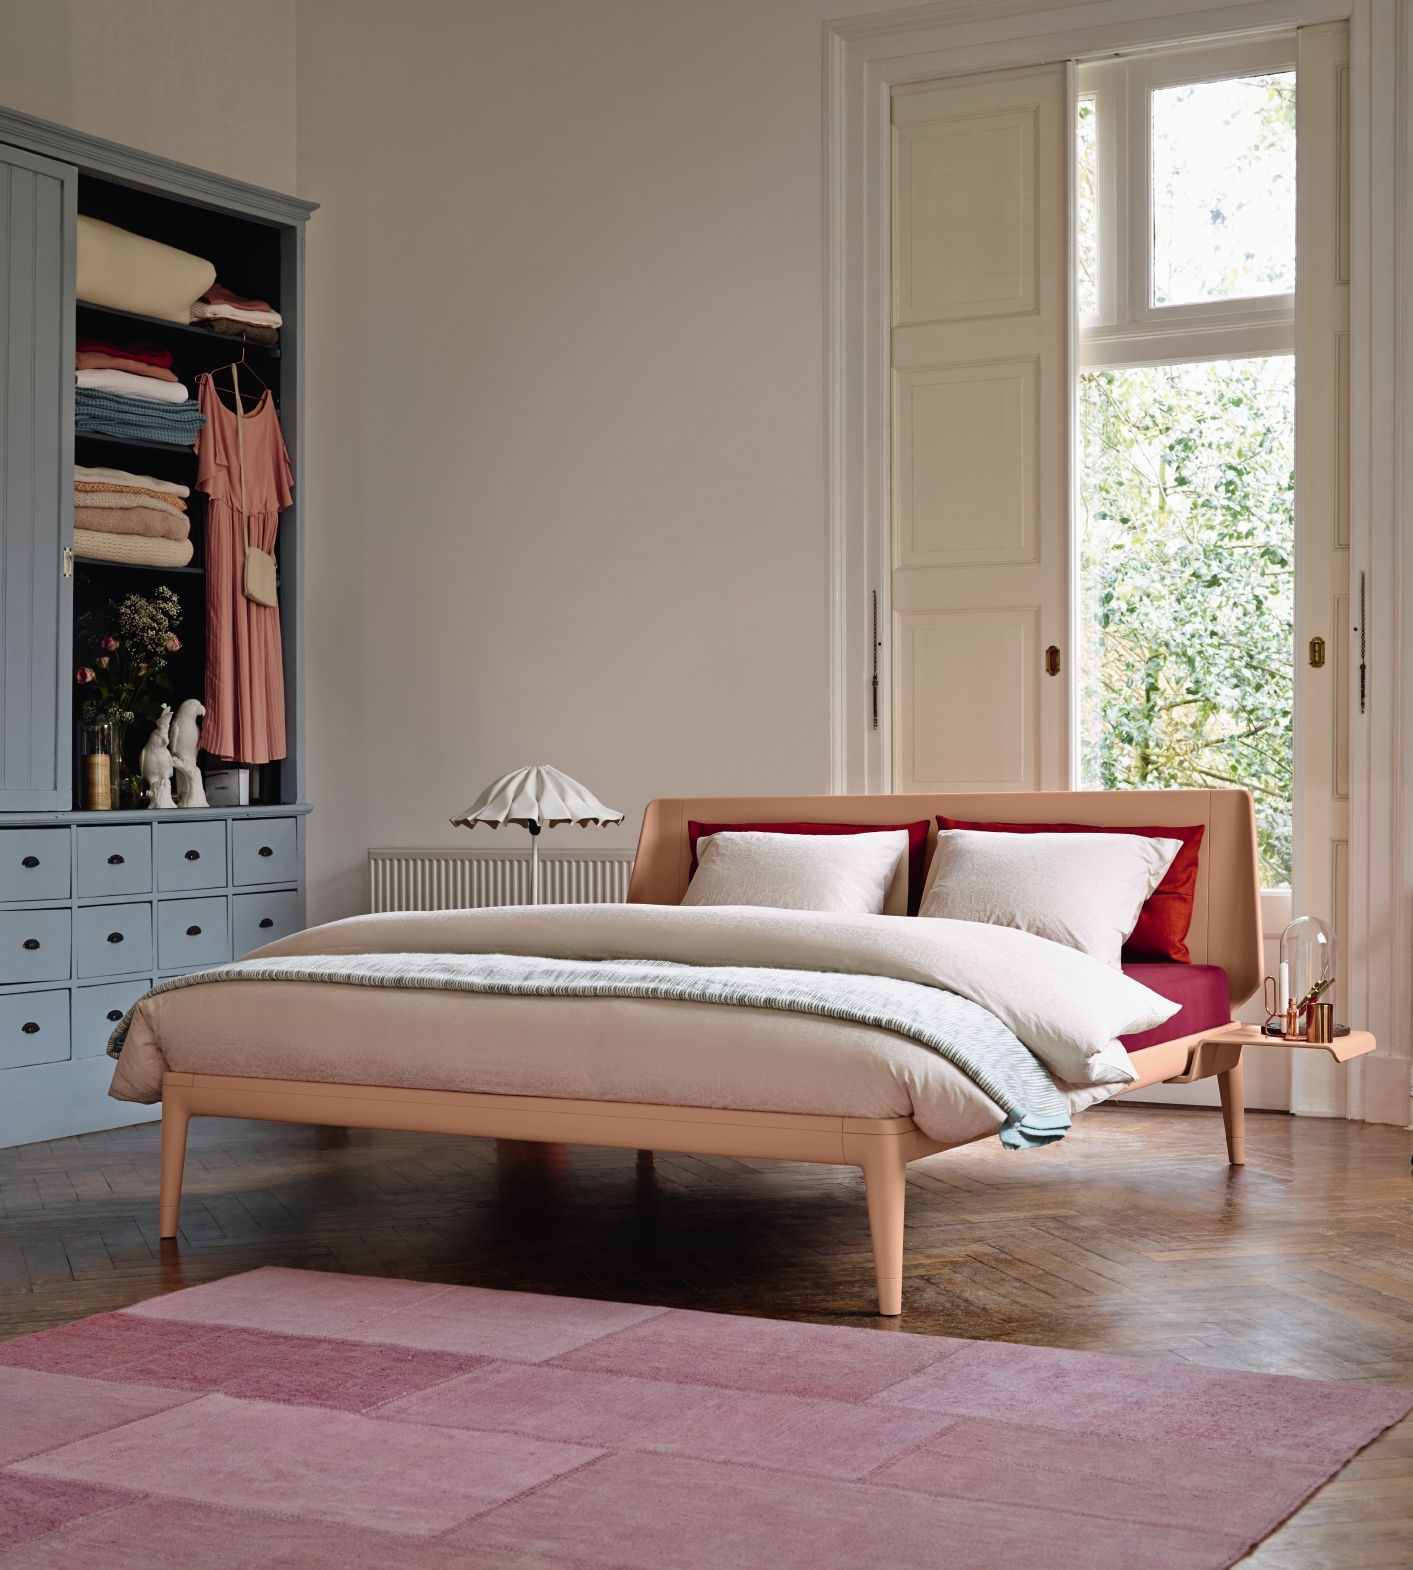 Auping Essential #skin #nude #rose #bedroom #schlafzimmer #bett